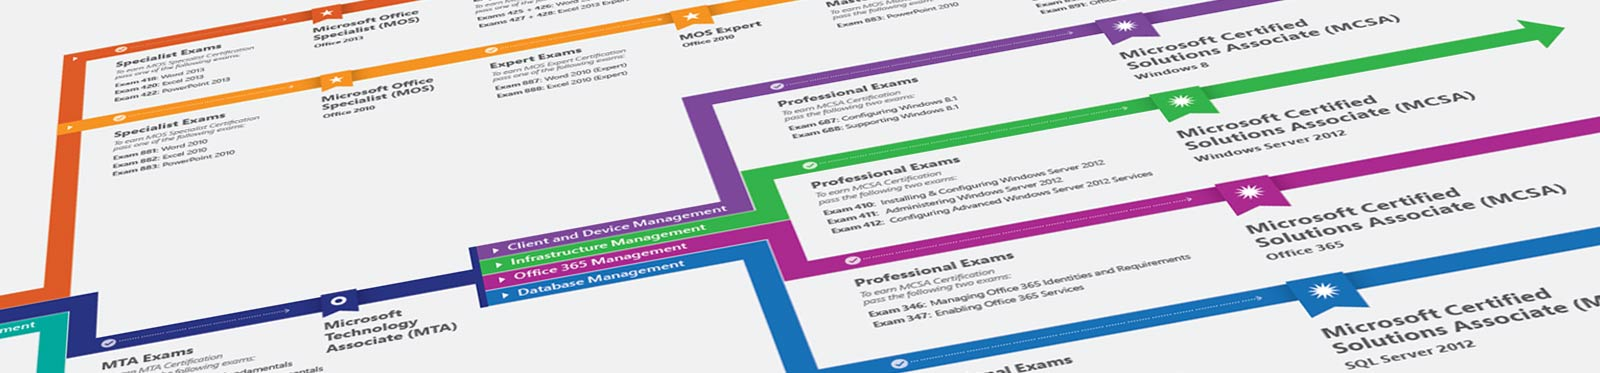 Imagine Academy Certification Roadmap Microsoft Education - Us road map company